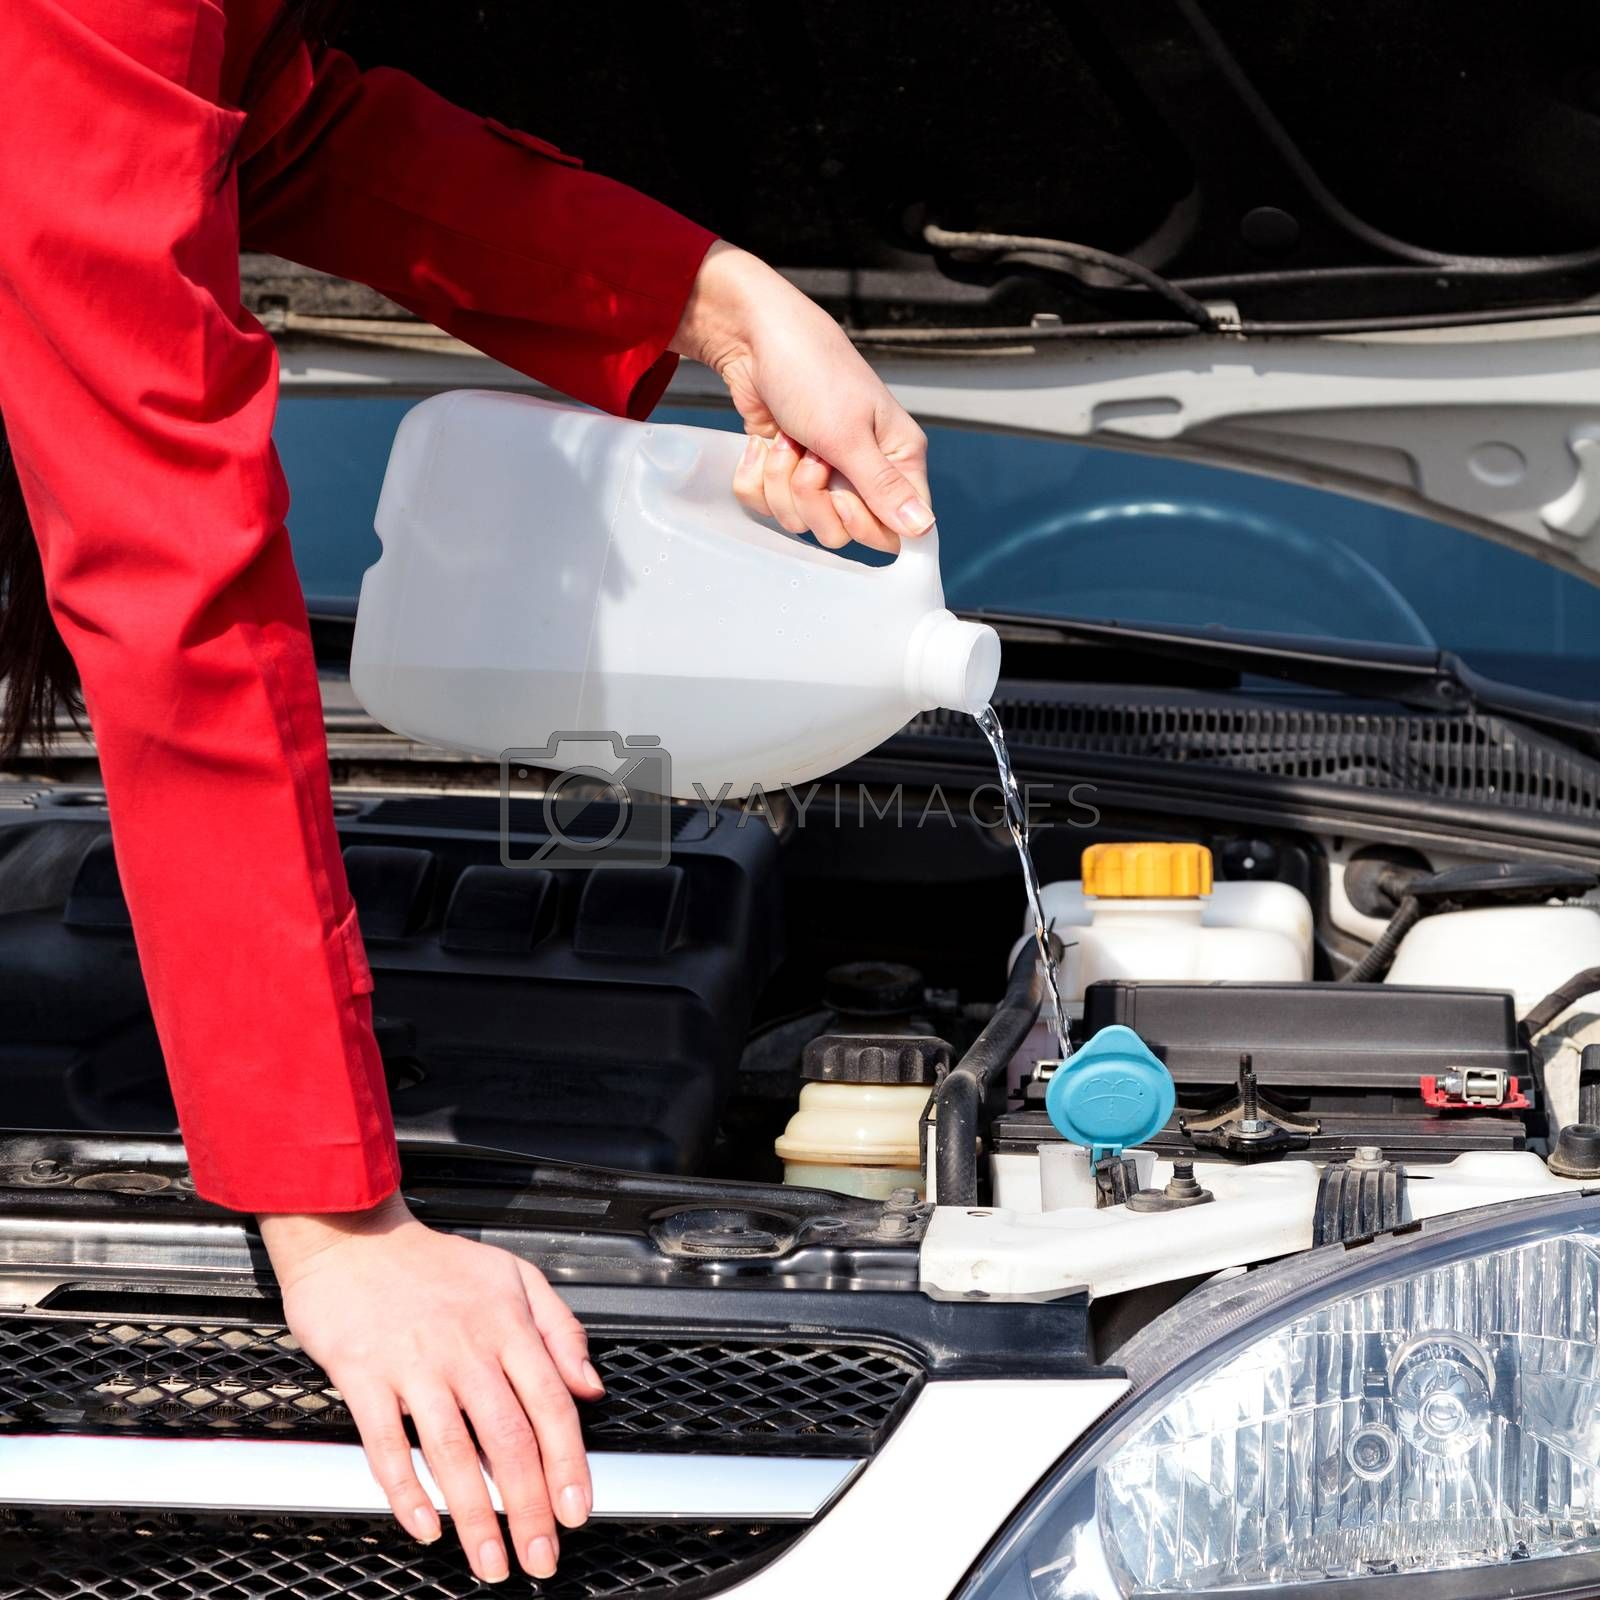 Cropped image of woman pouring windshield washer fluid into car